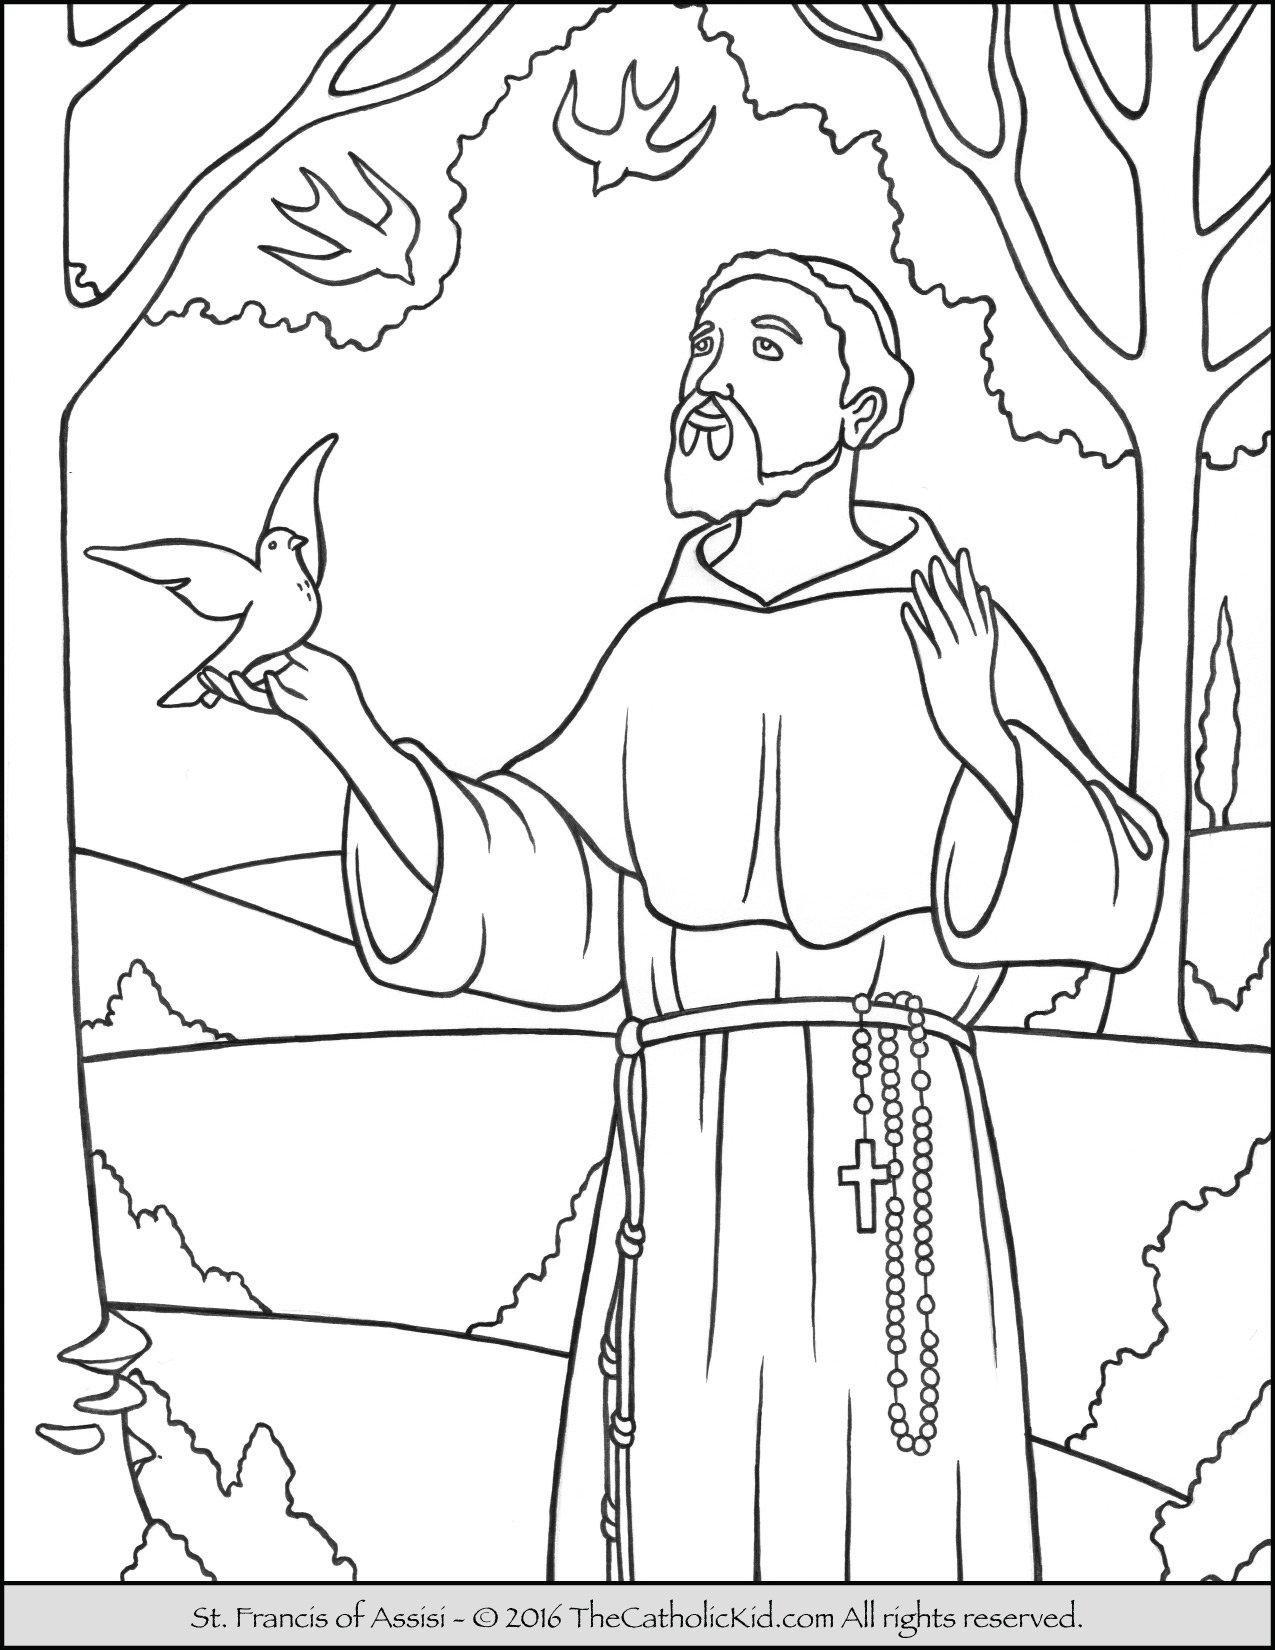 st francis of assisi coloring pages - saint francis coloring page